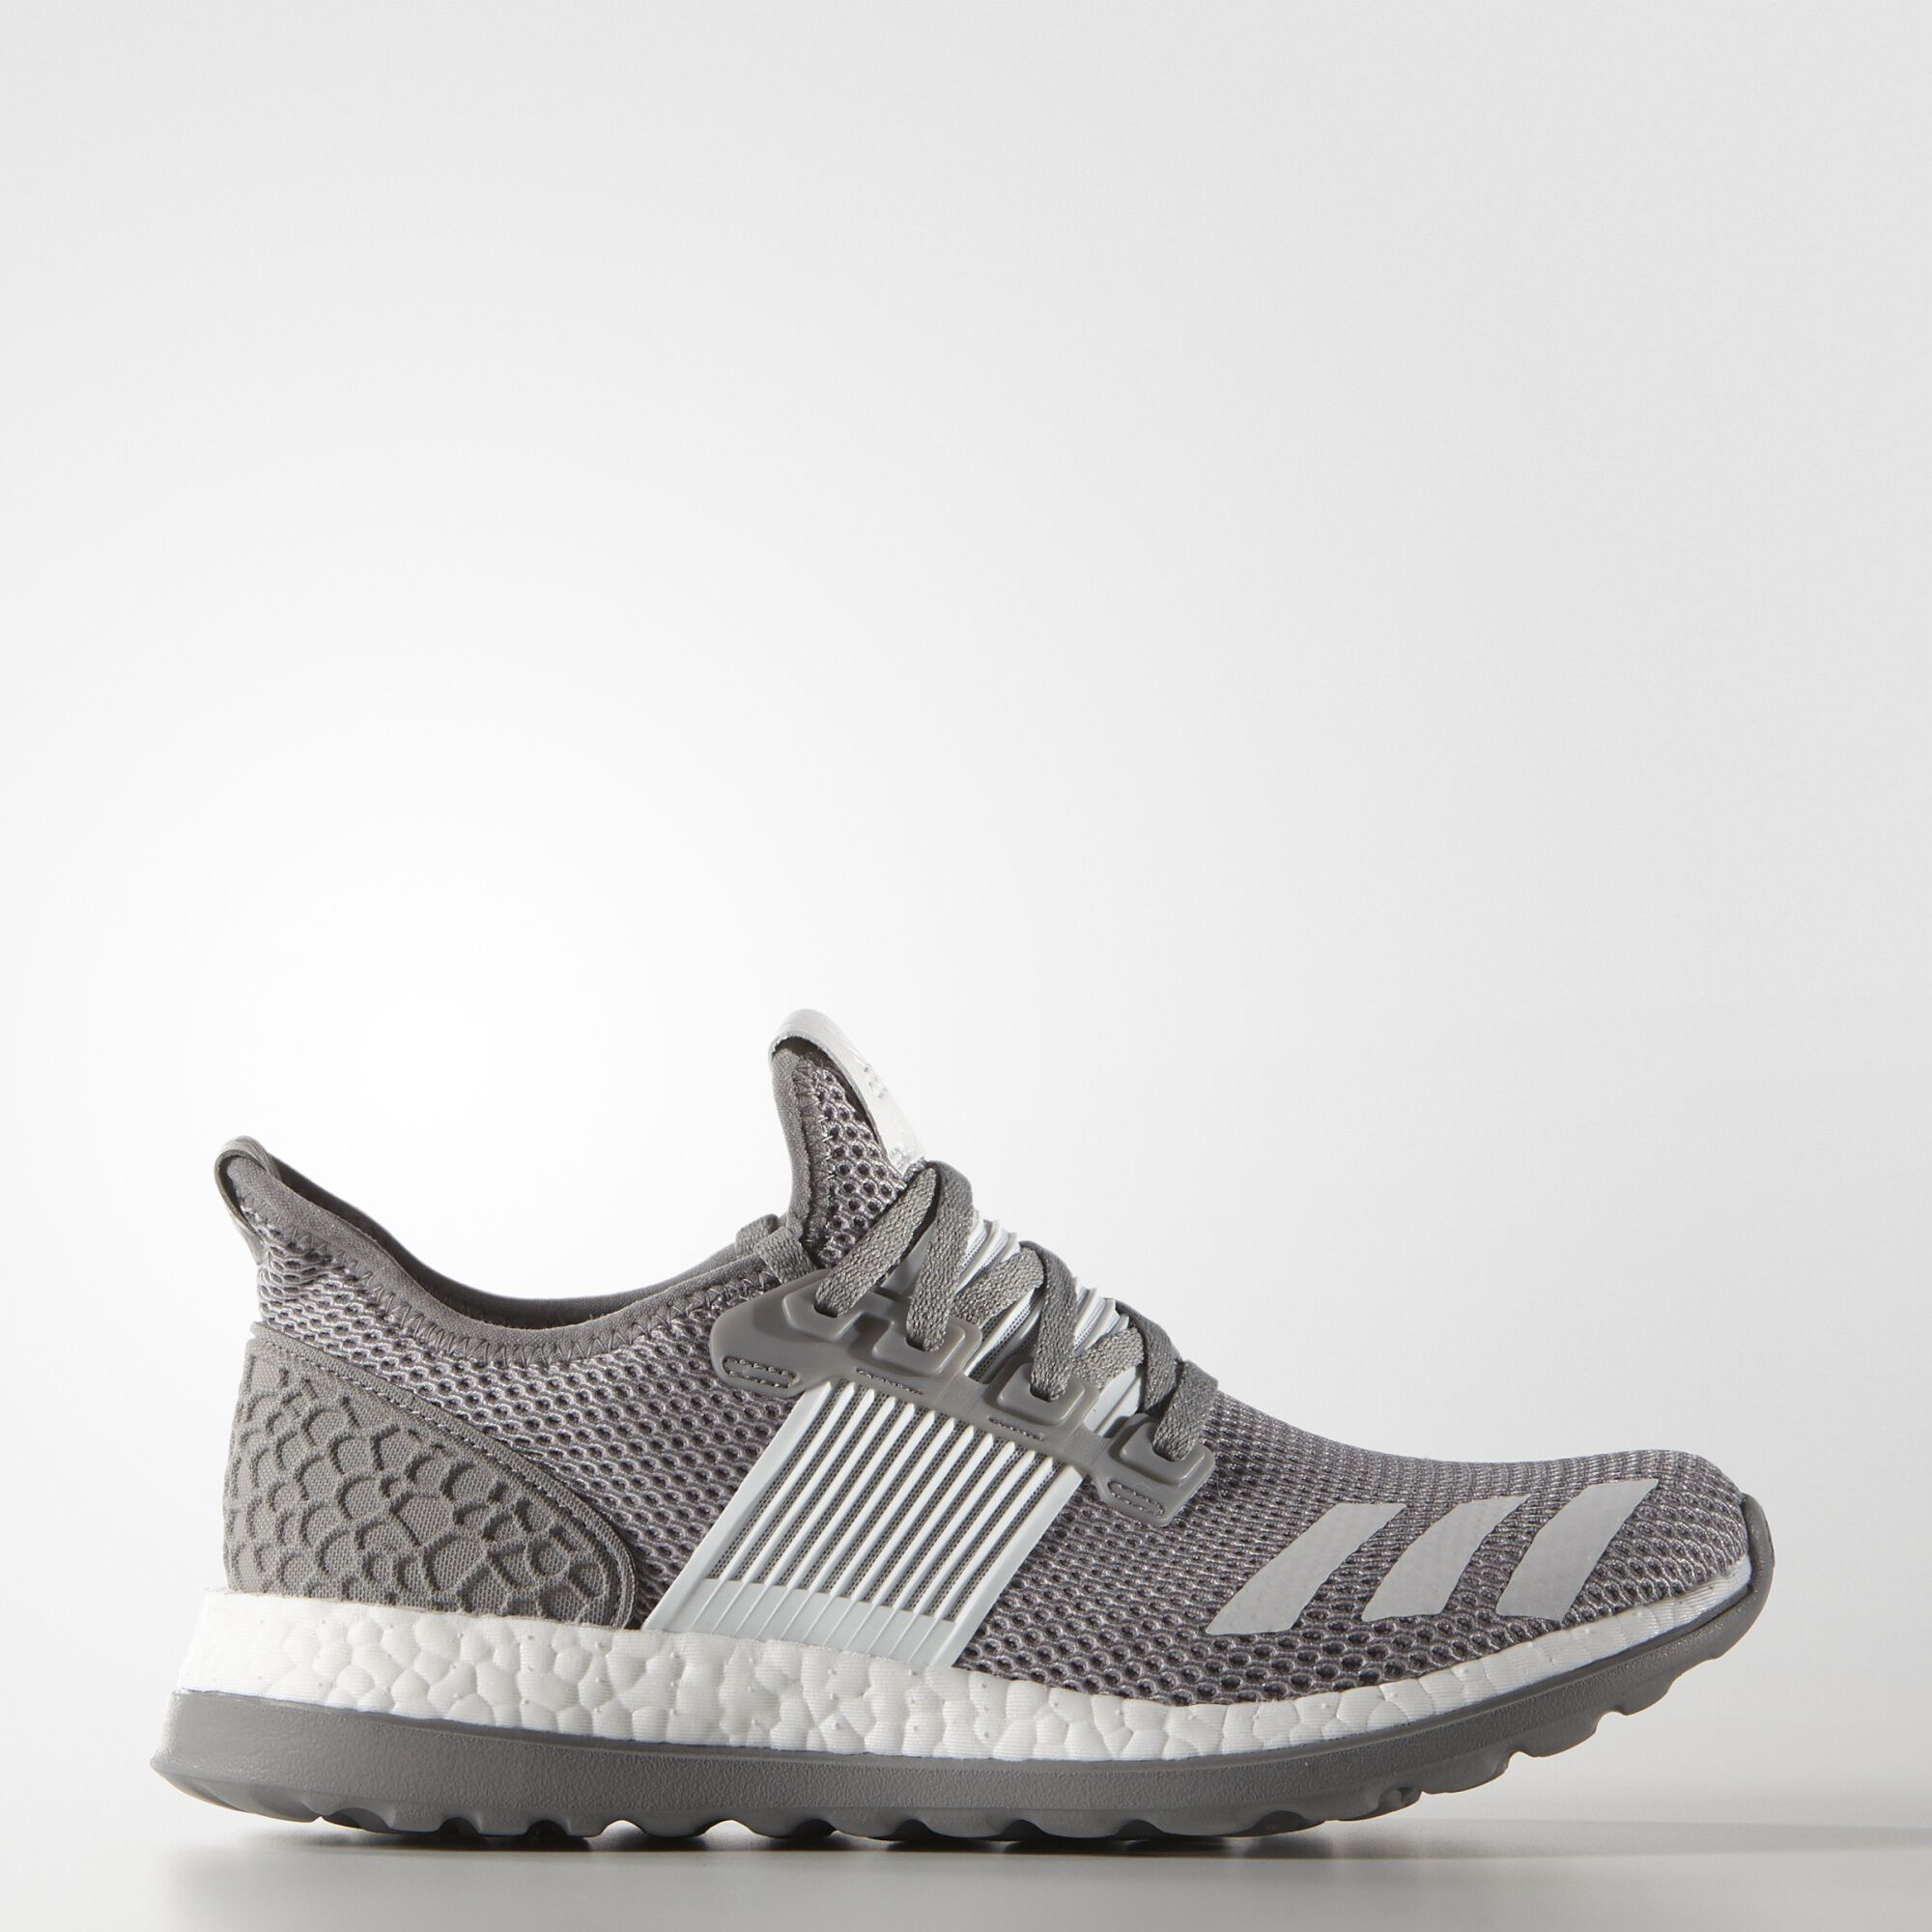 Adidas Boost Zg Running Shoes